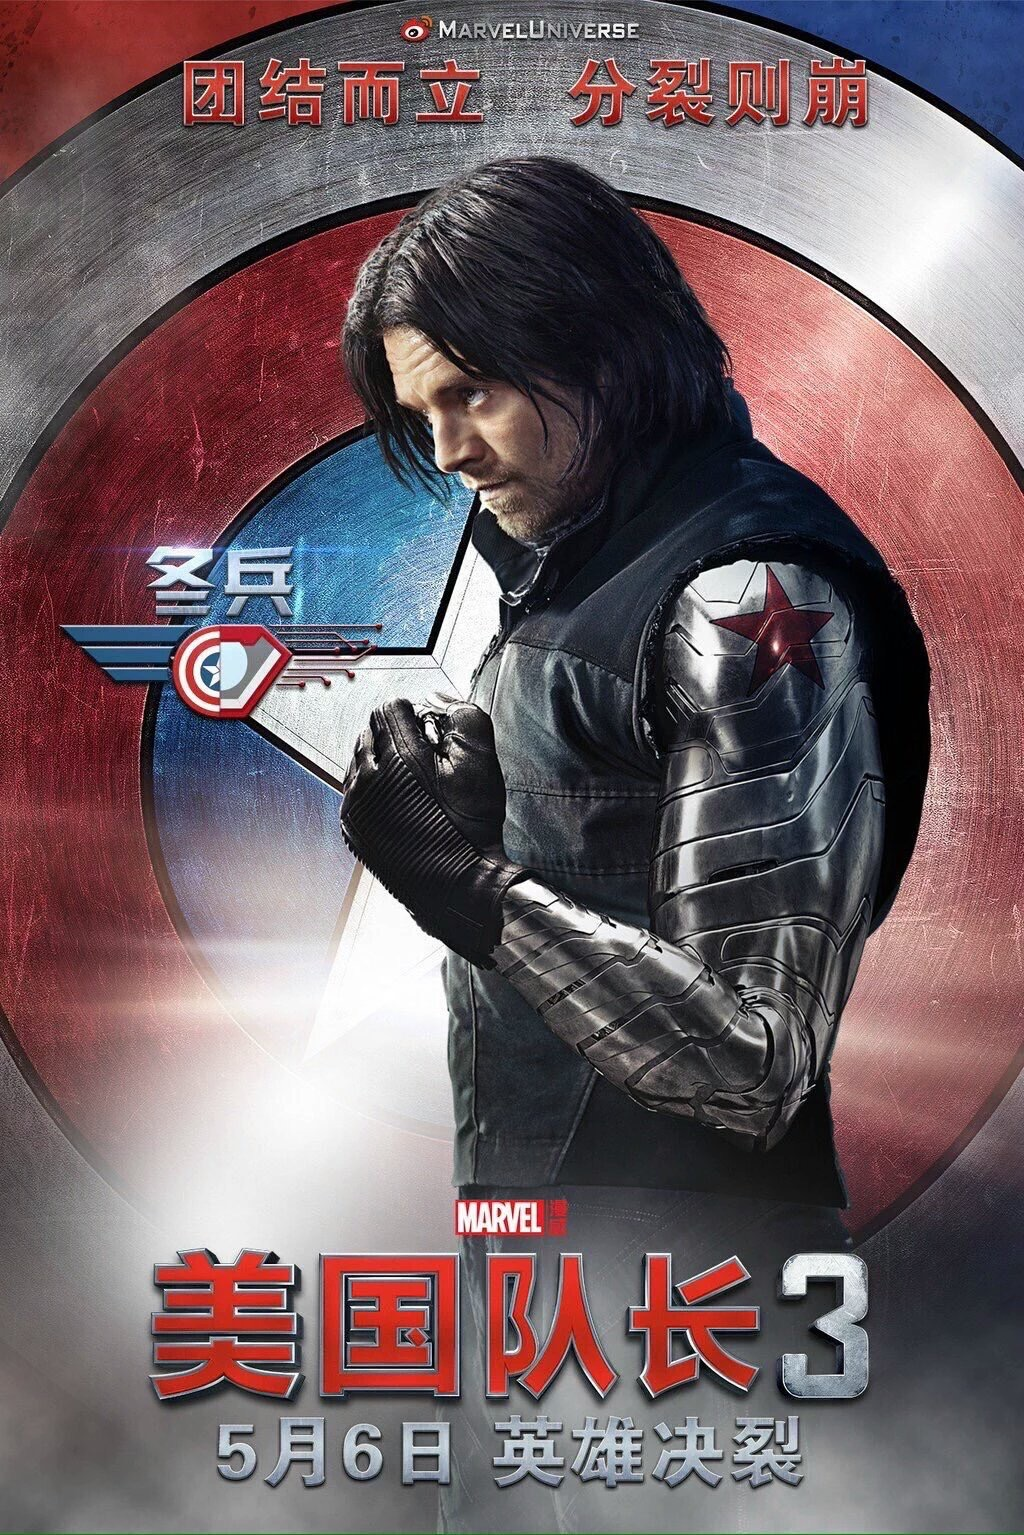 captain america, civil war, winter soldier, bucky barnes, sebastian stan, international poster